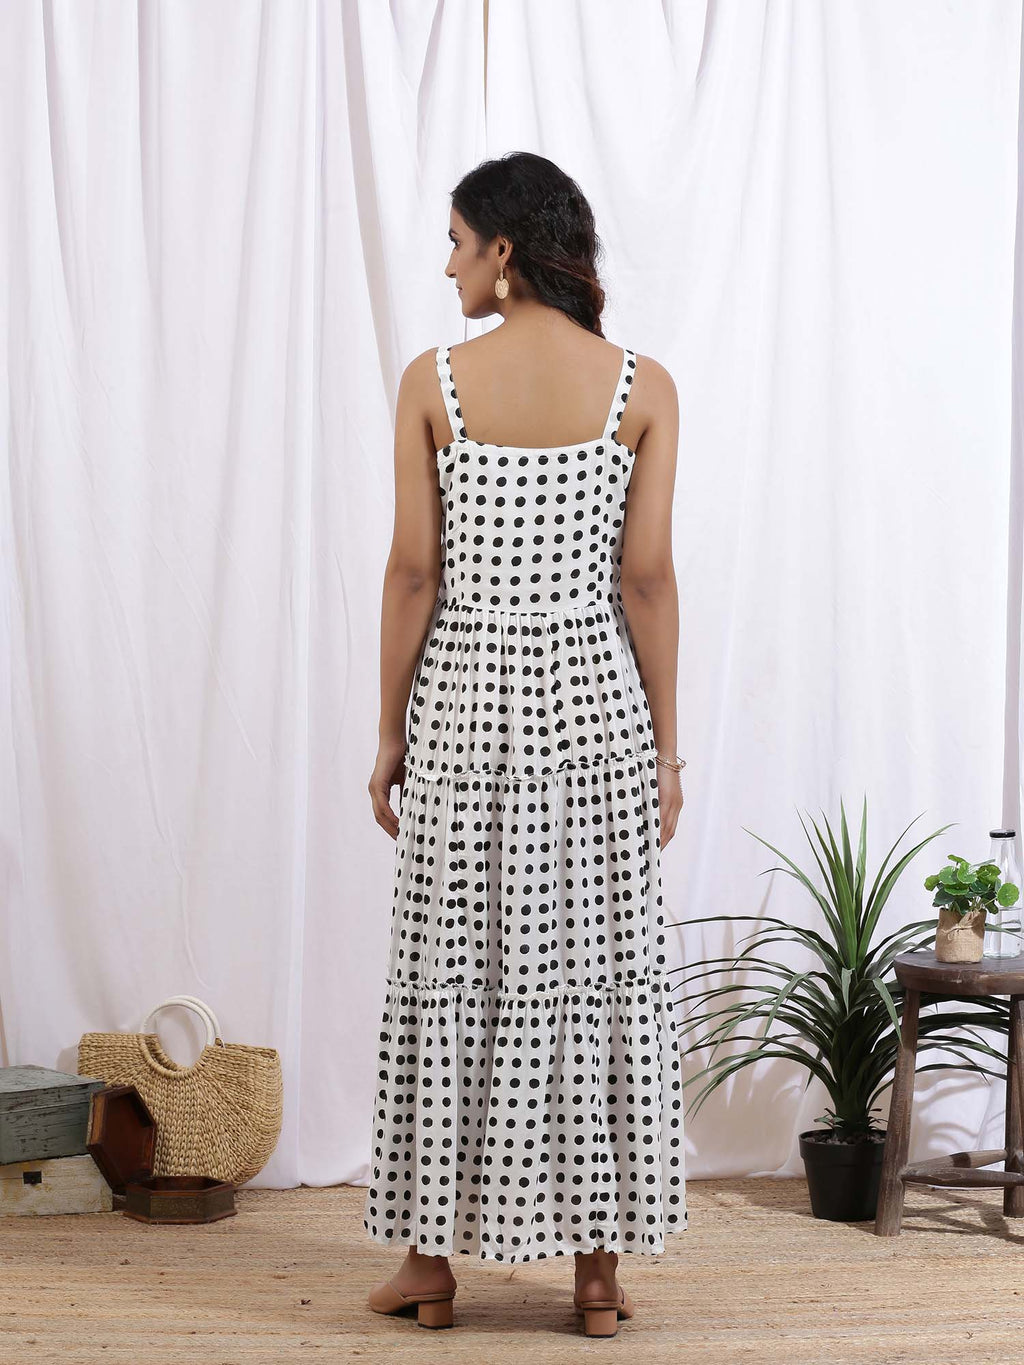 White and Black Noir Polka Dress - Riviera Closet